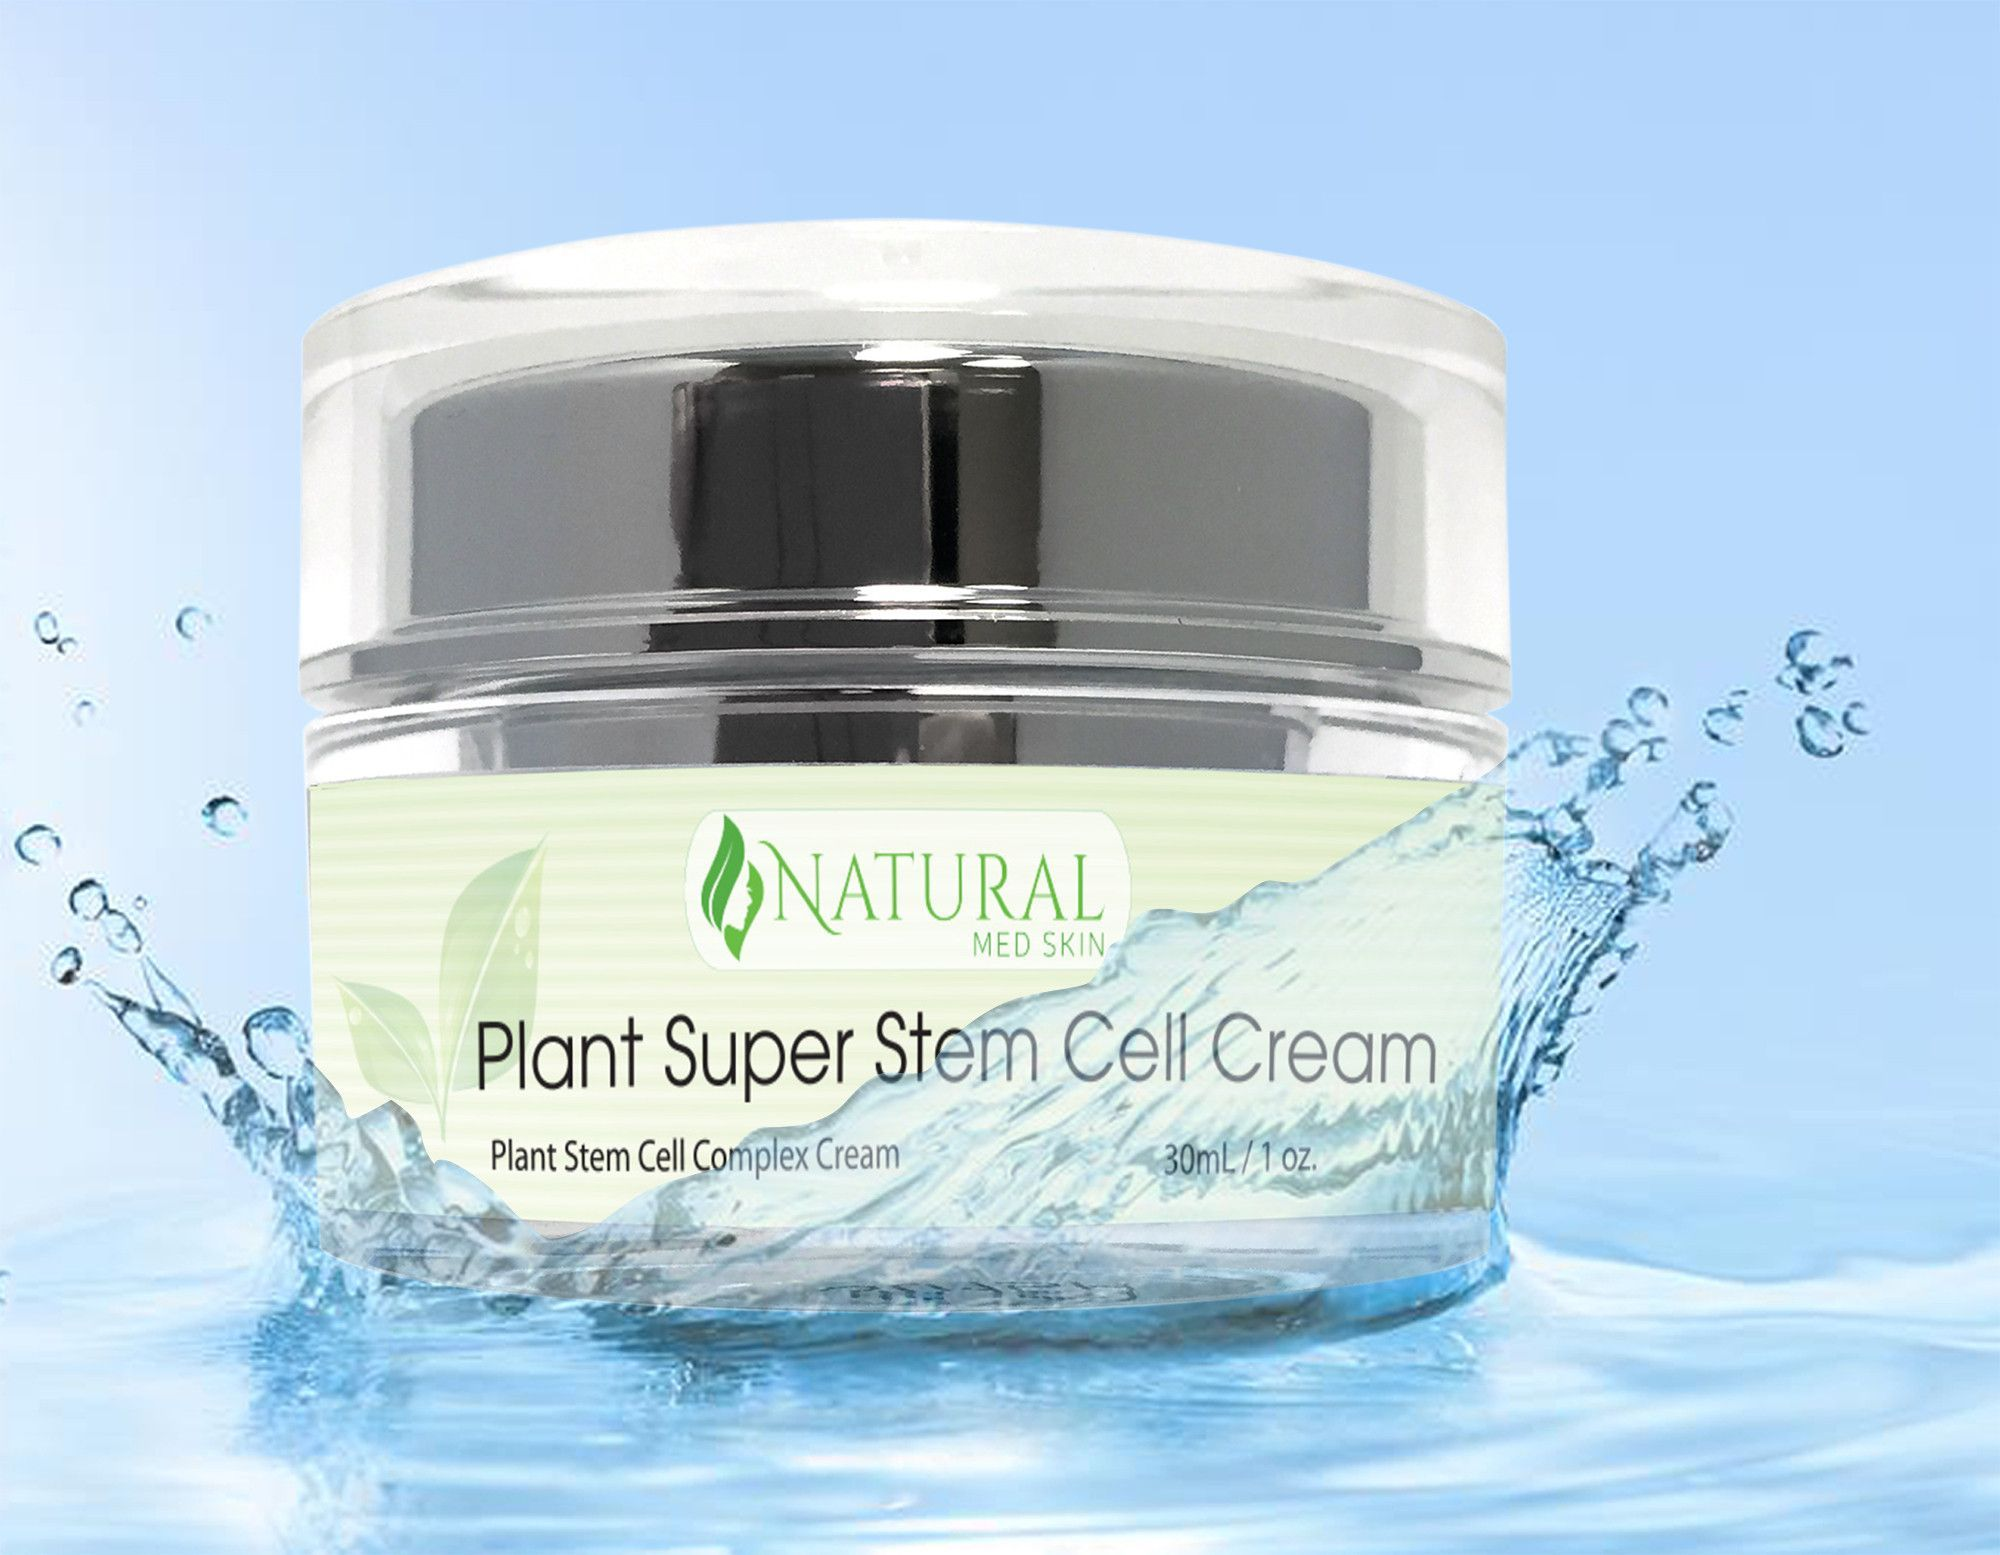 Plant Super Stem Cell Cream In 2018 Products Pinterest Cream